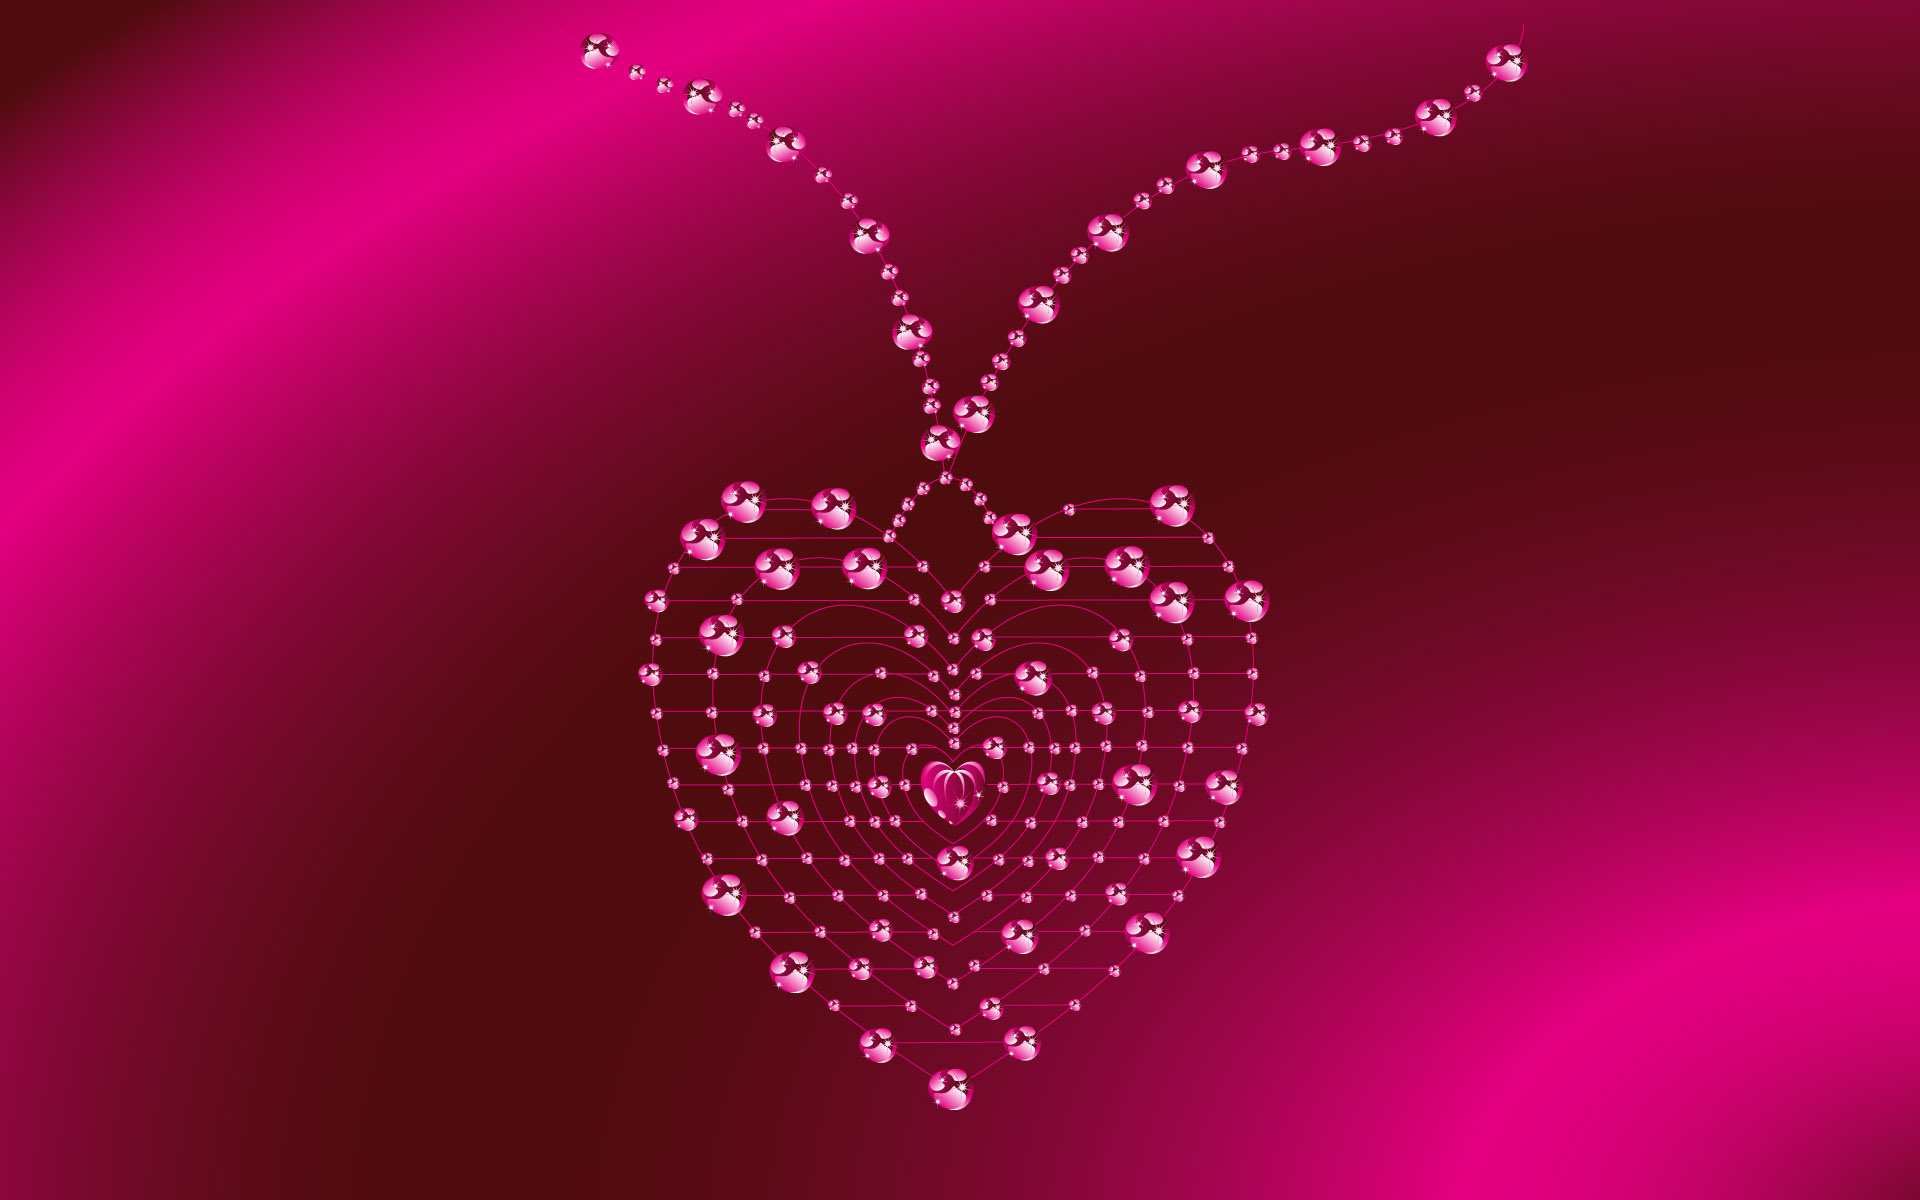 Previous Pink Jewelry Heart